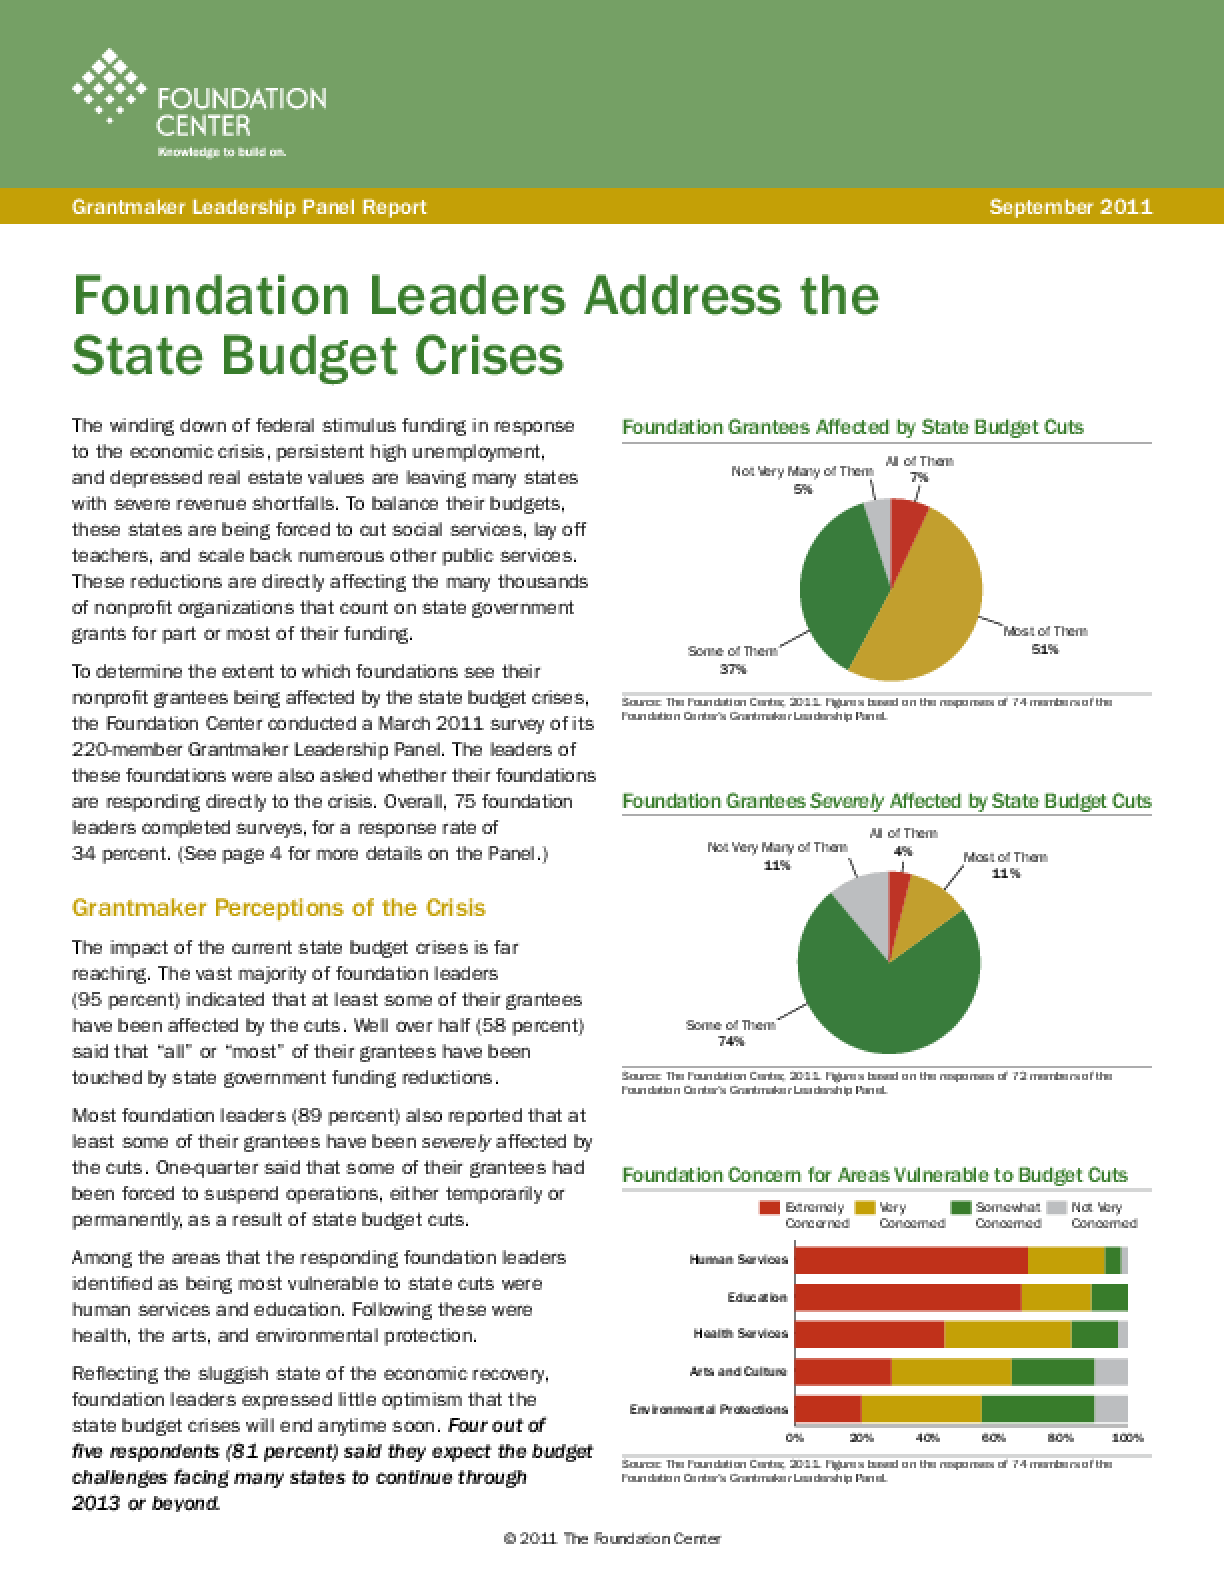 Foundation Leaders Address the State Budget Crises